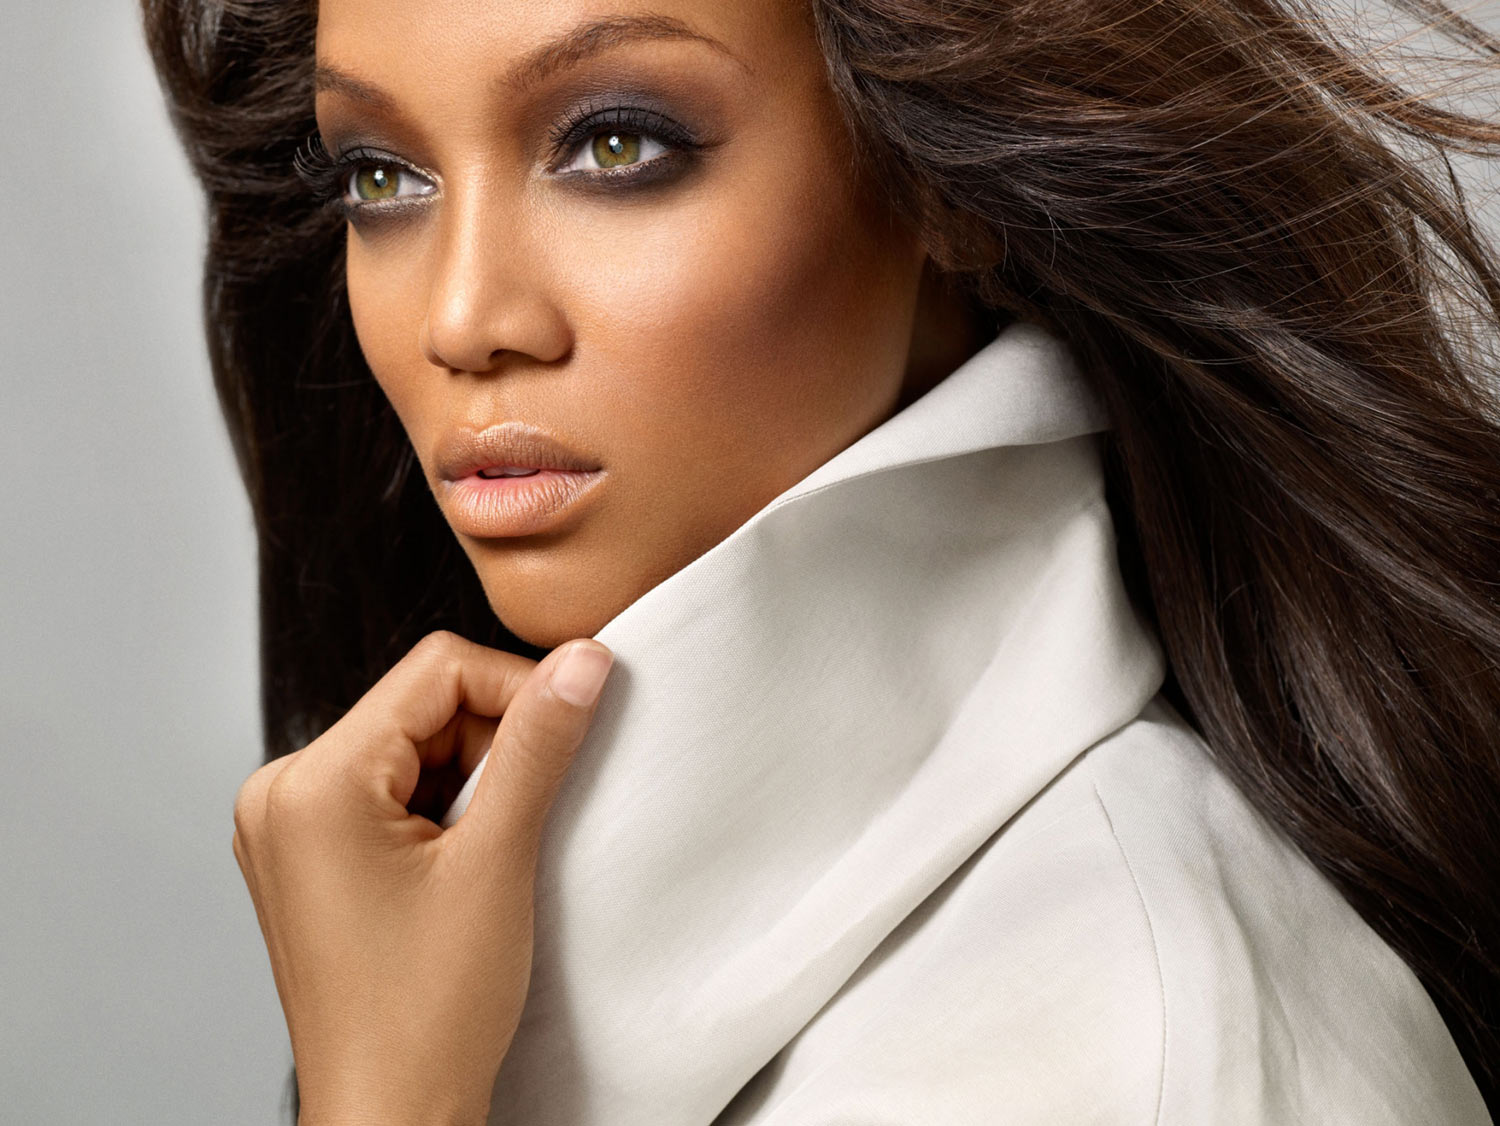 Tyra Banks - Older models can now 'smize' on America's Next Top Model